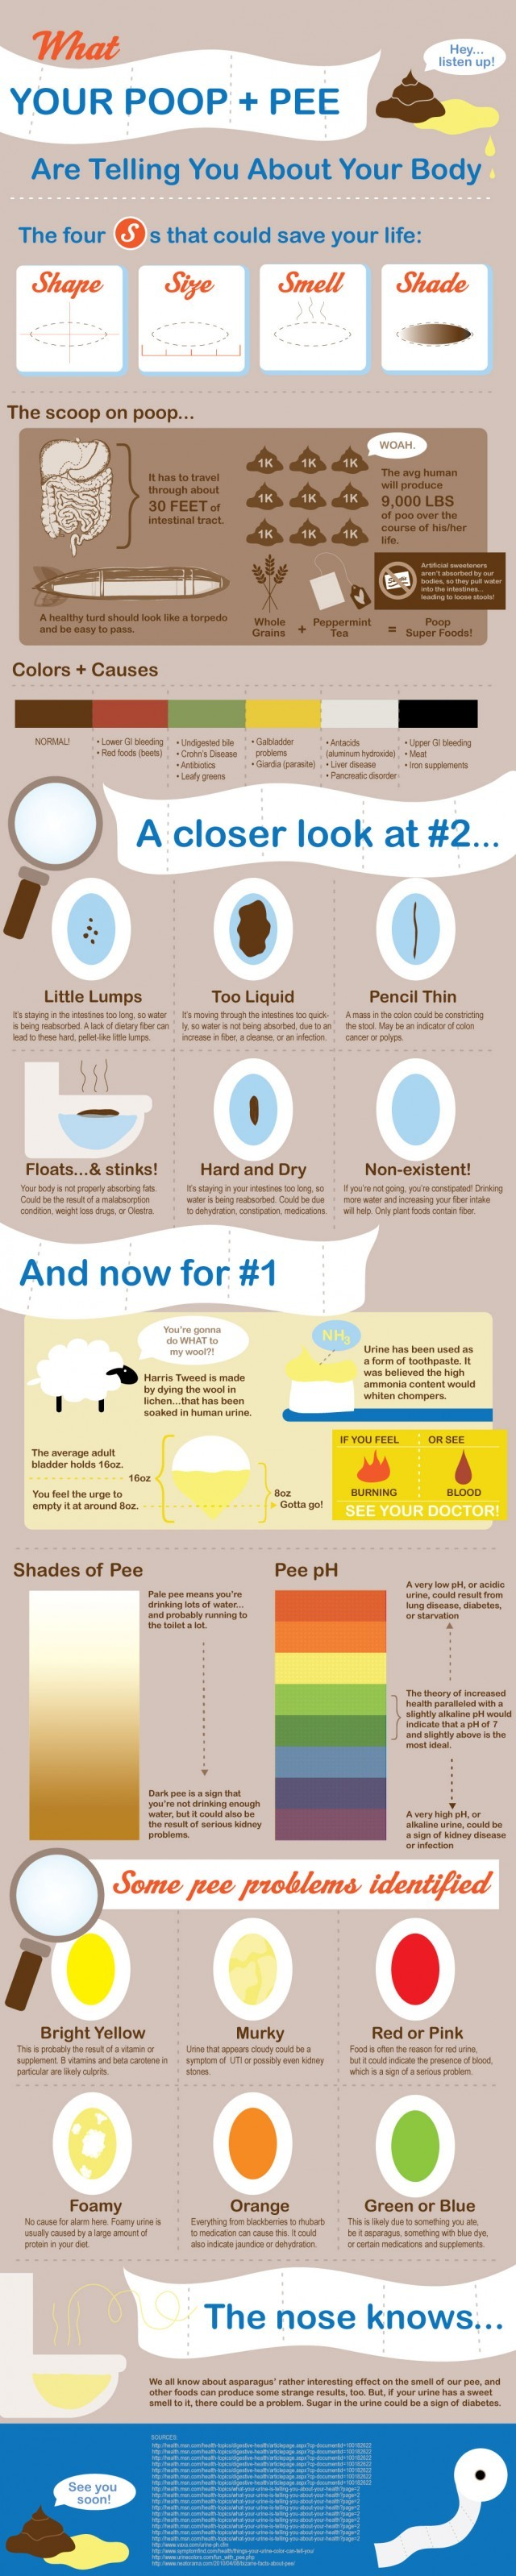 Poop infographic click to enlarge